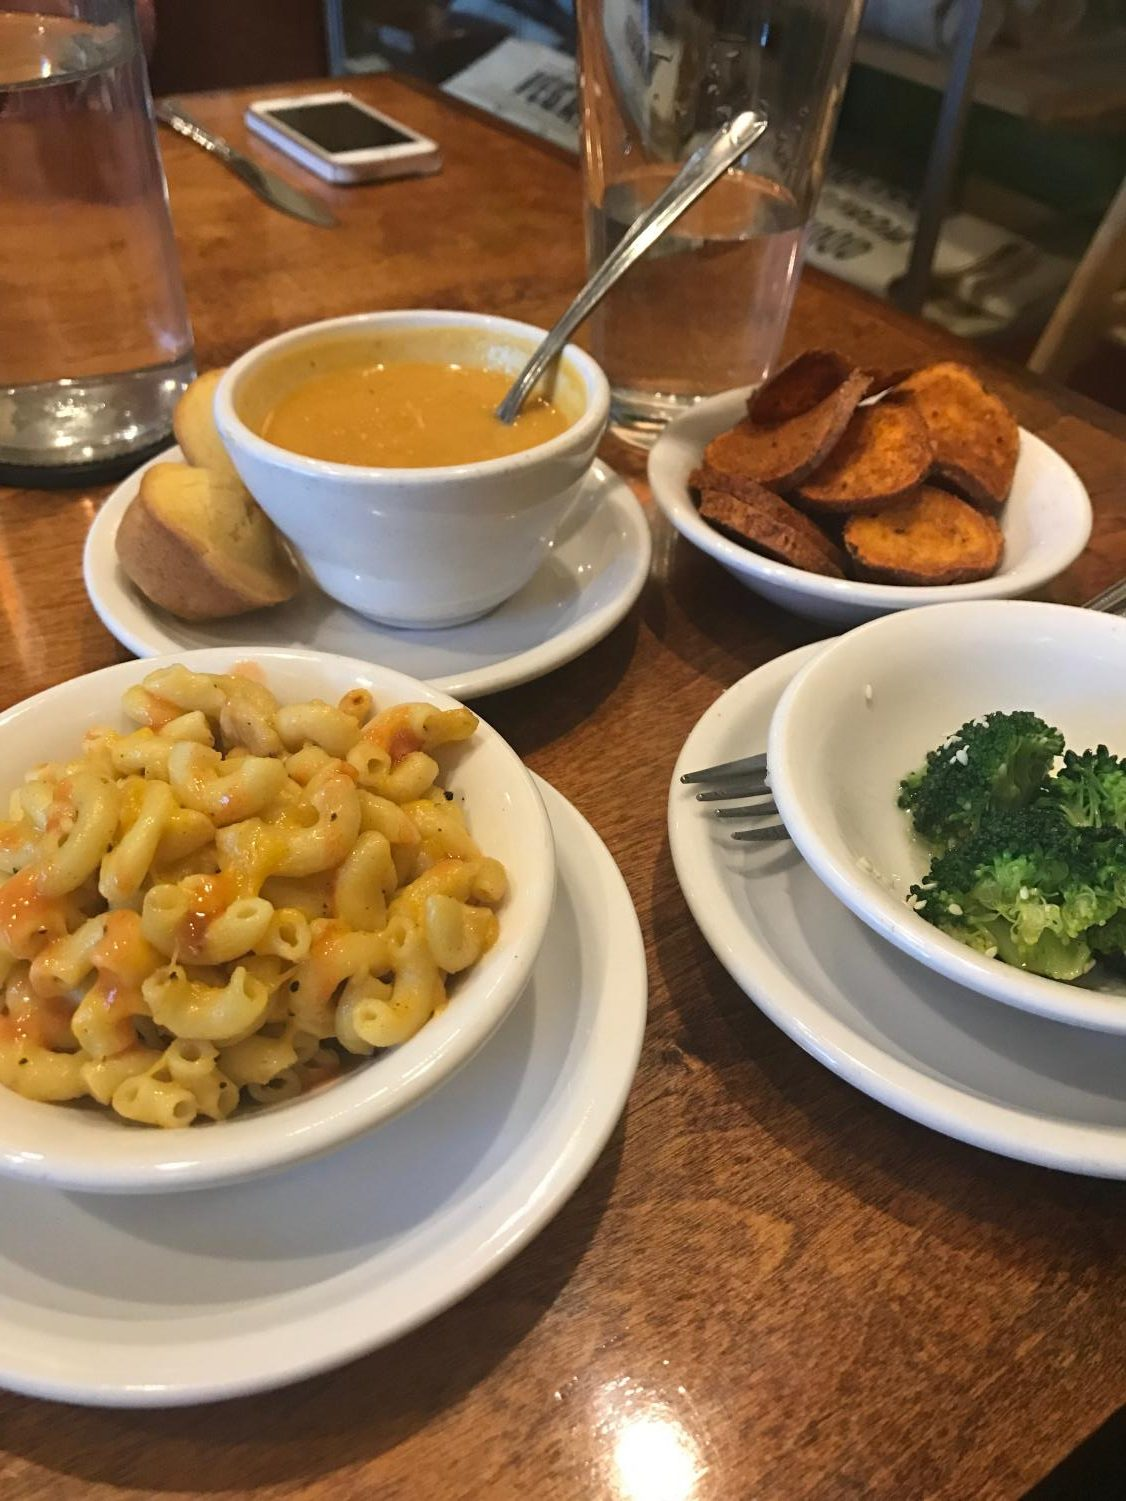 Detroit Vegan Soul offers a variety of vegan dishes close to home.